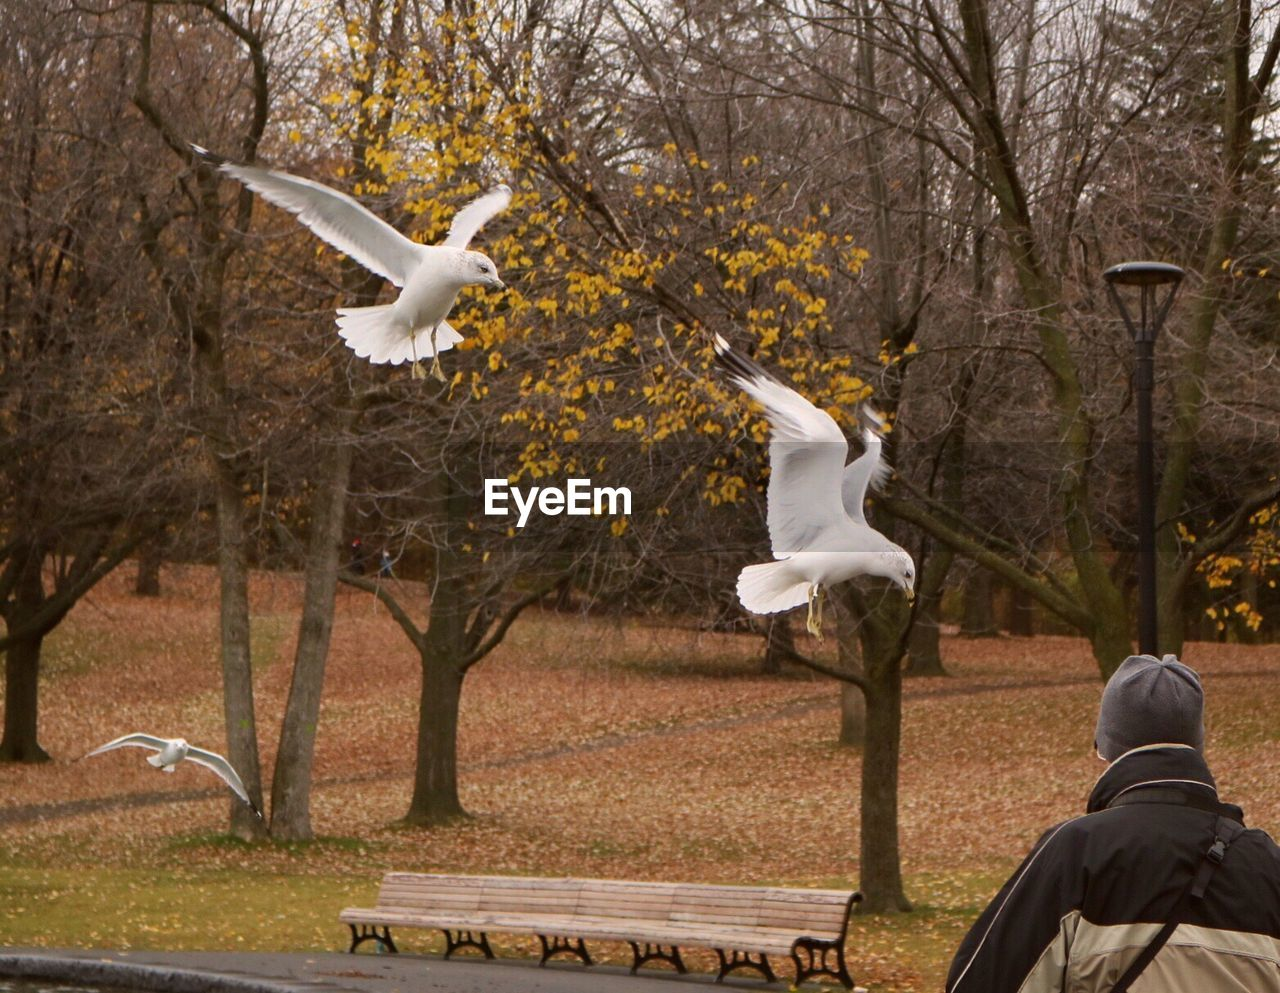 Seagulls over man against trees during autumn